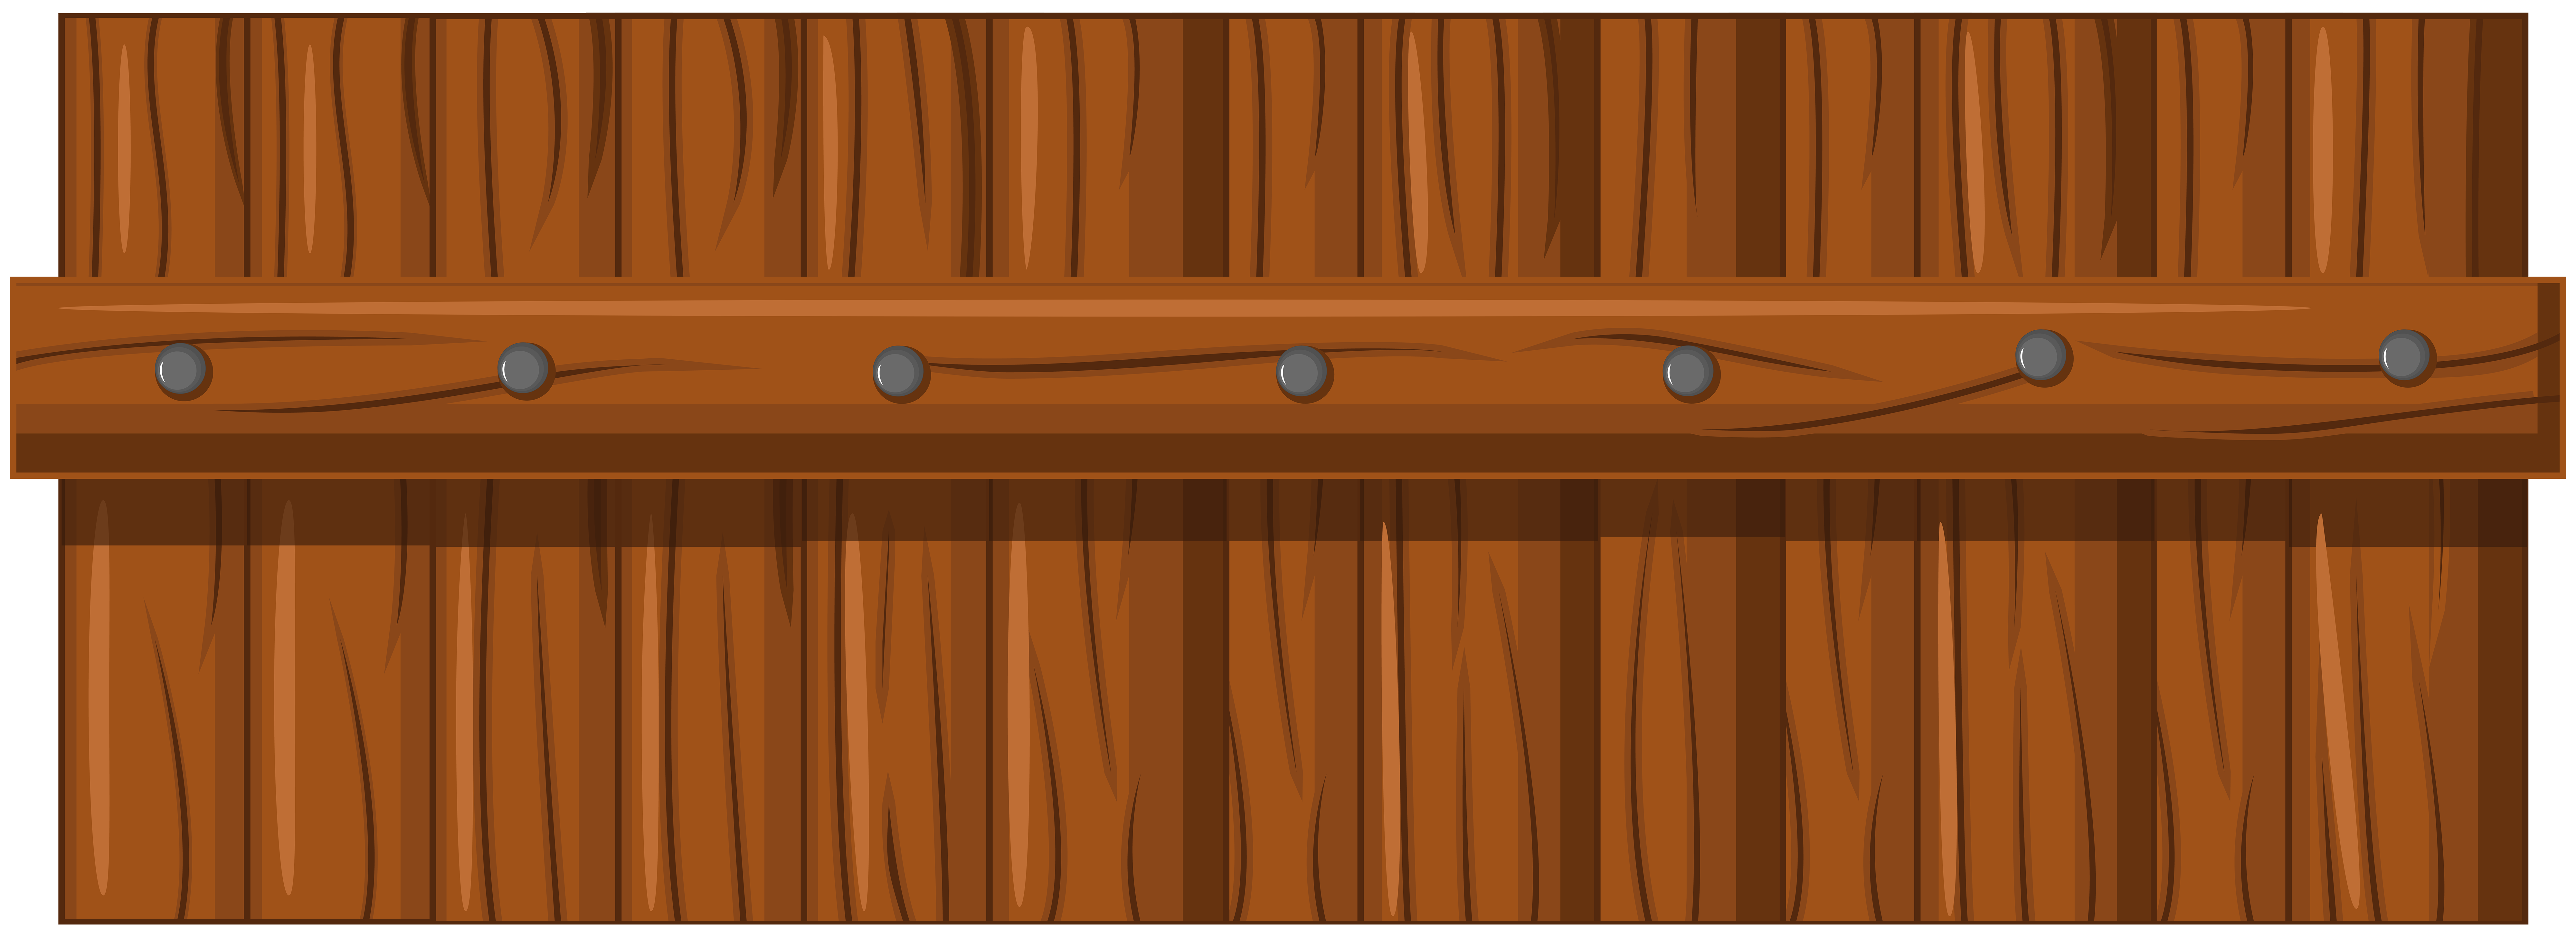 Brown Wooden Fence Transparent PNG Clip Art.